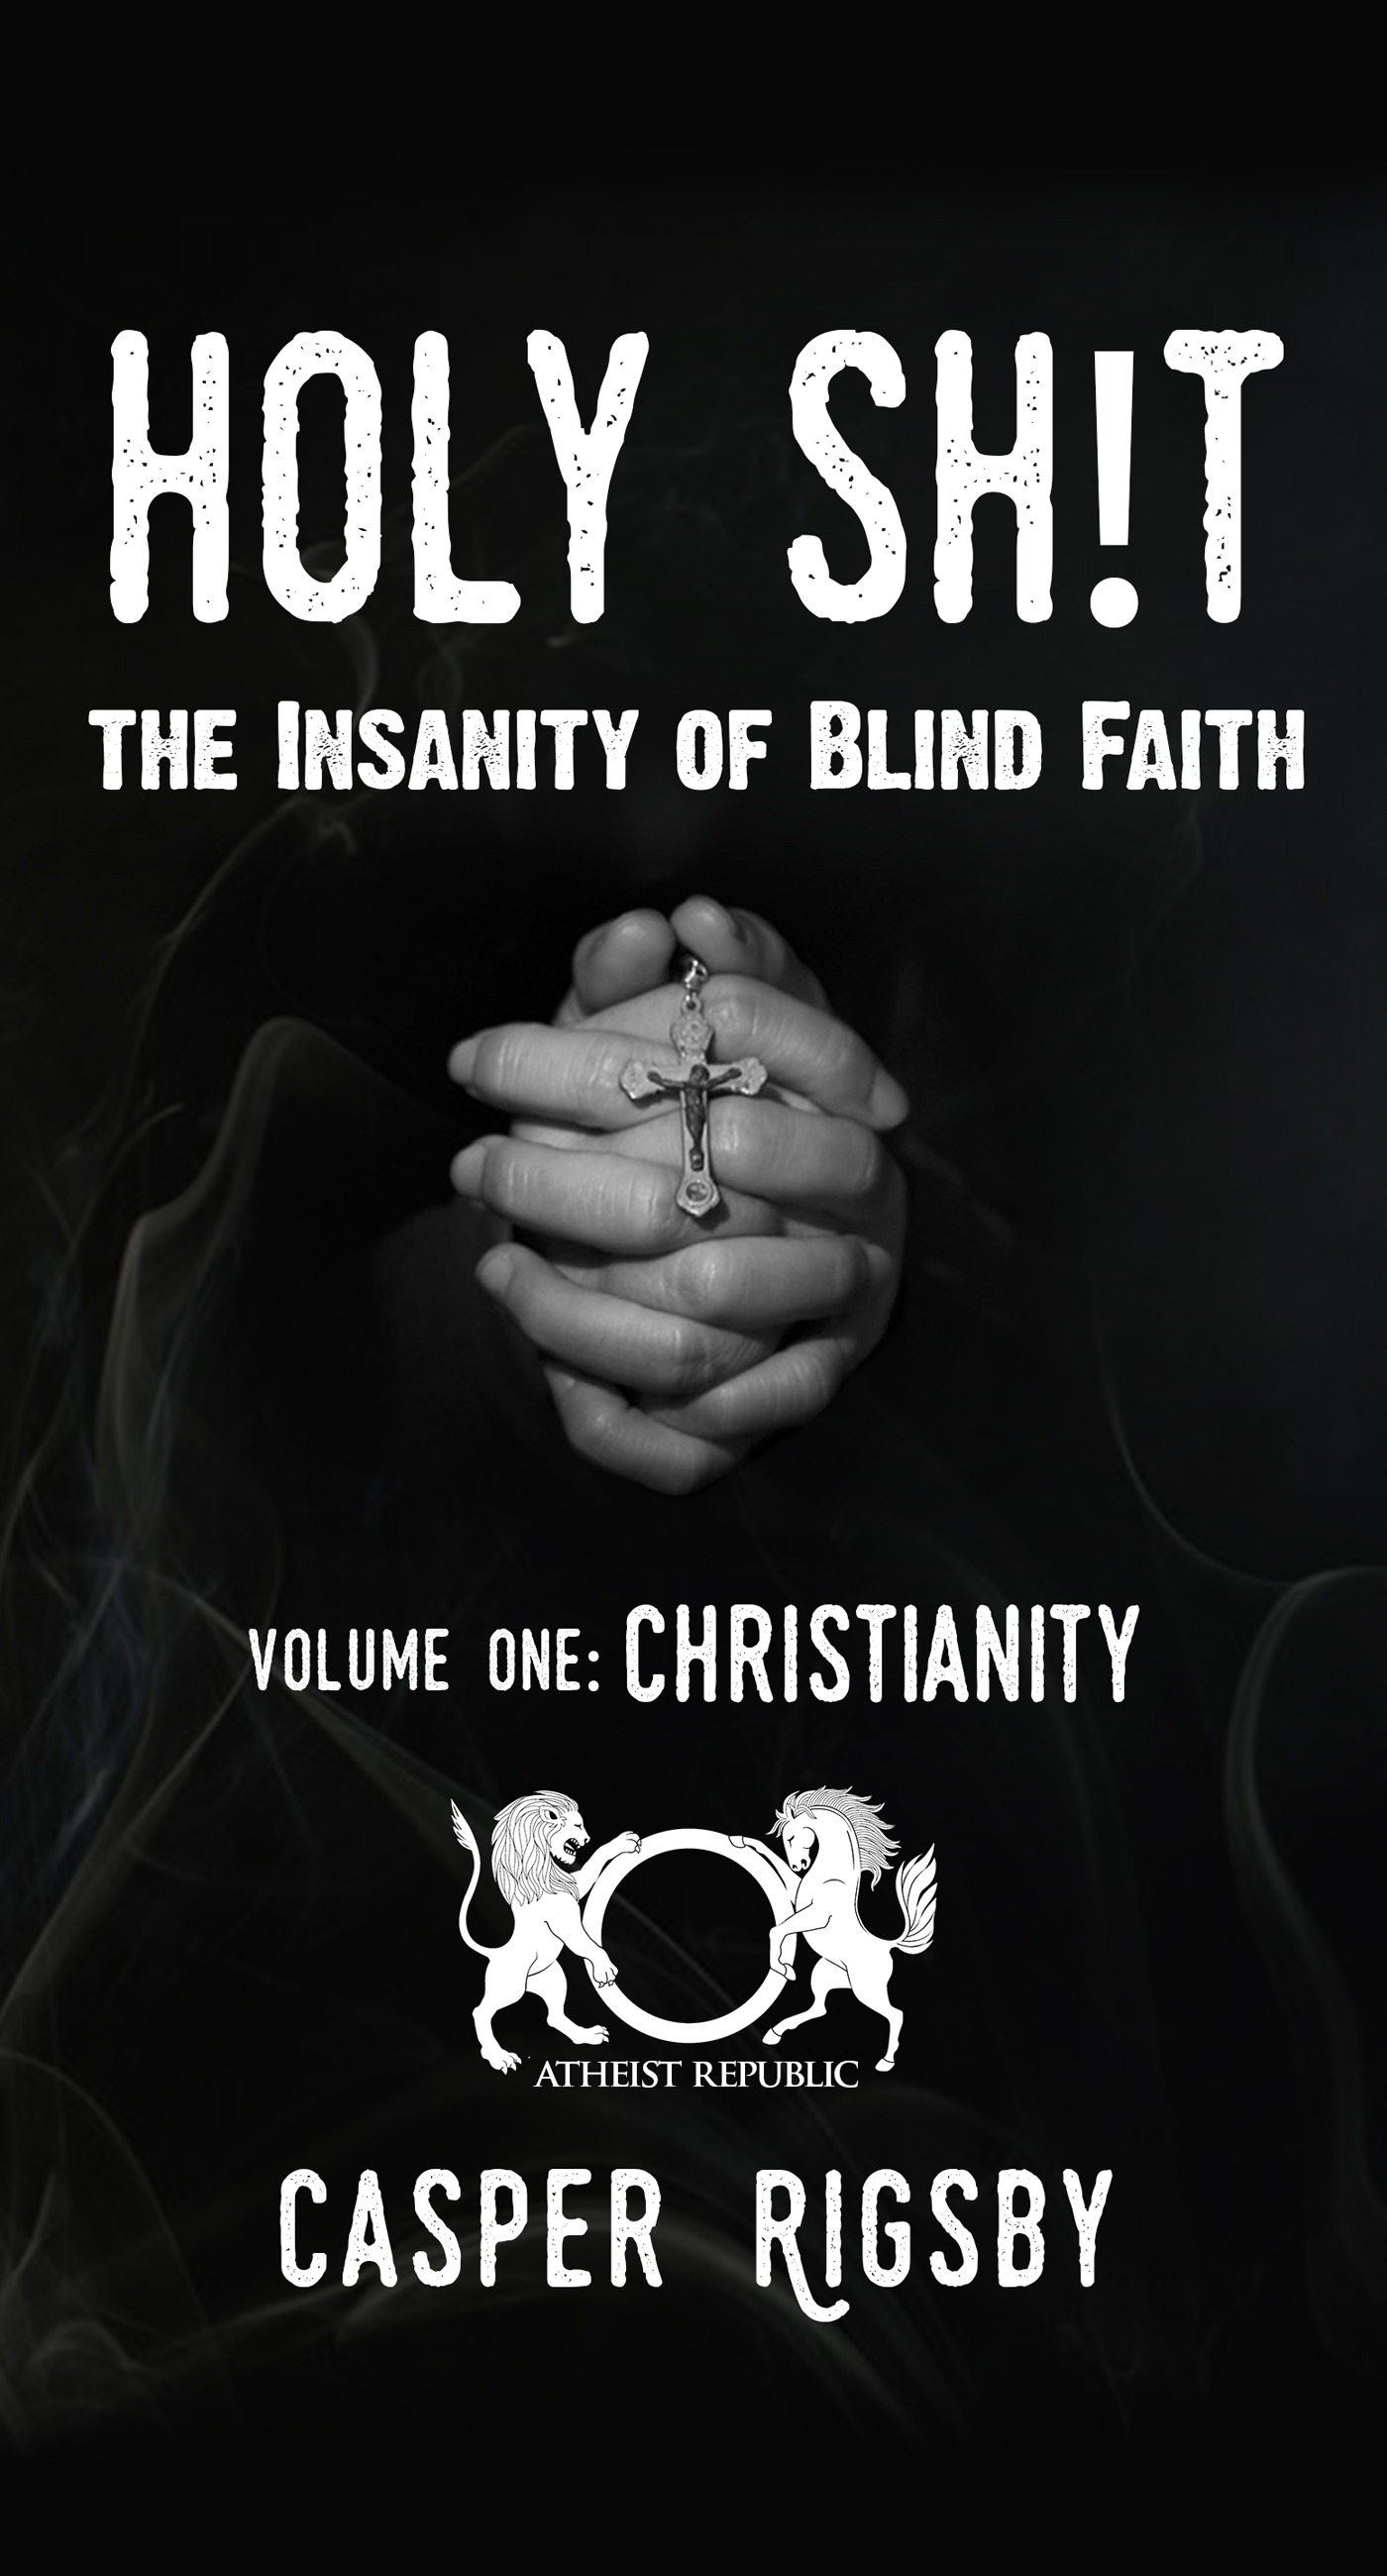 understanding blind faith in christianity How do you respond to those who accuse christians of blindly following their religion do we have a reasonable foundation for our faith or is it just a gamble.